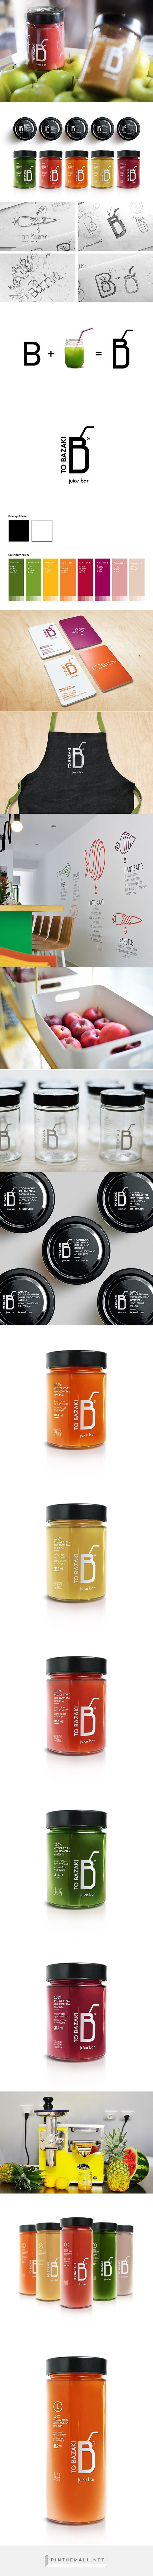 """TO BAZAKI"" Juice Bar – Design Identity. Designed by George Probonas."